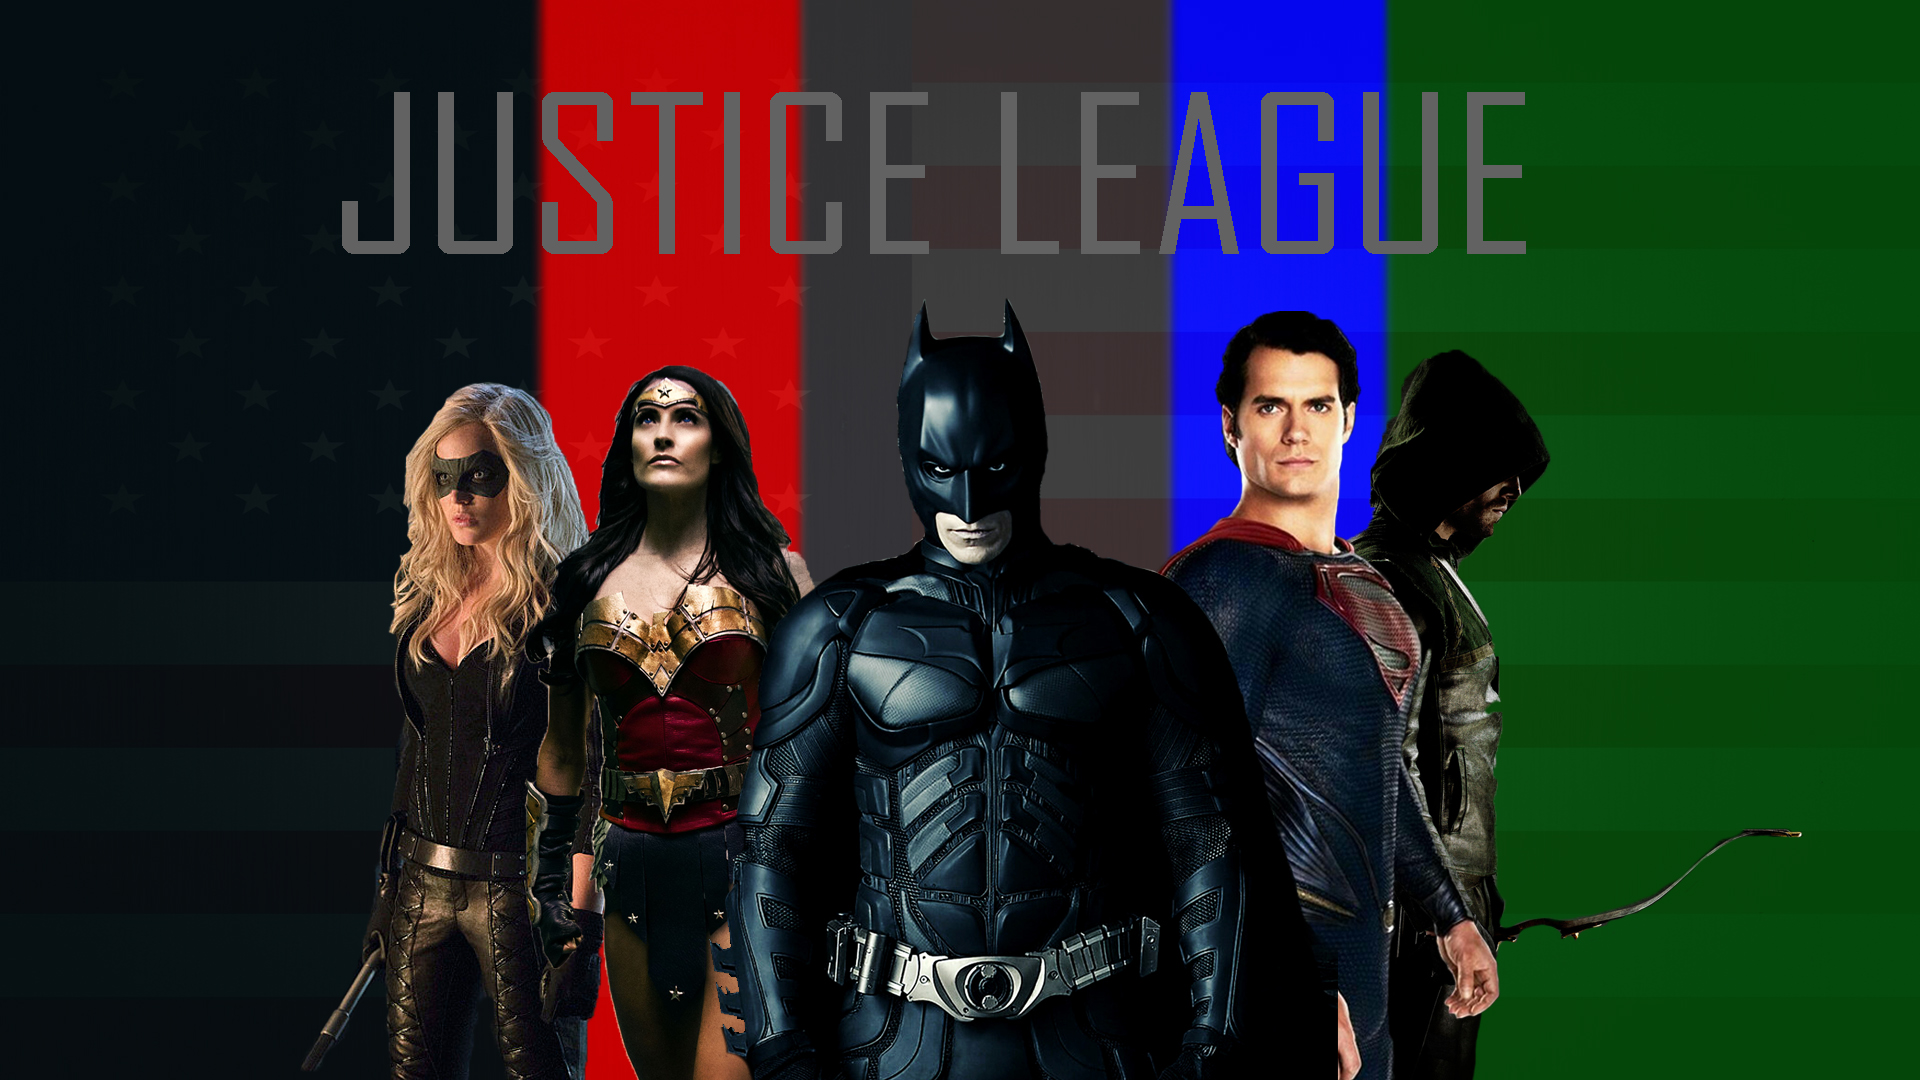 Justice League Movie Image Source From This